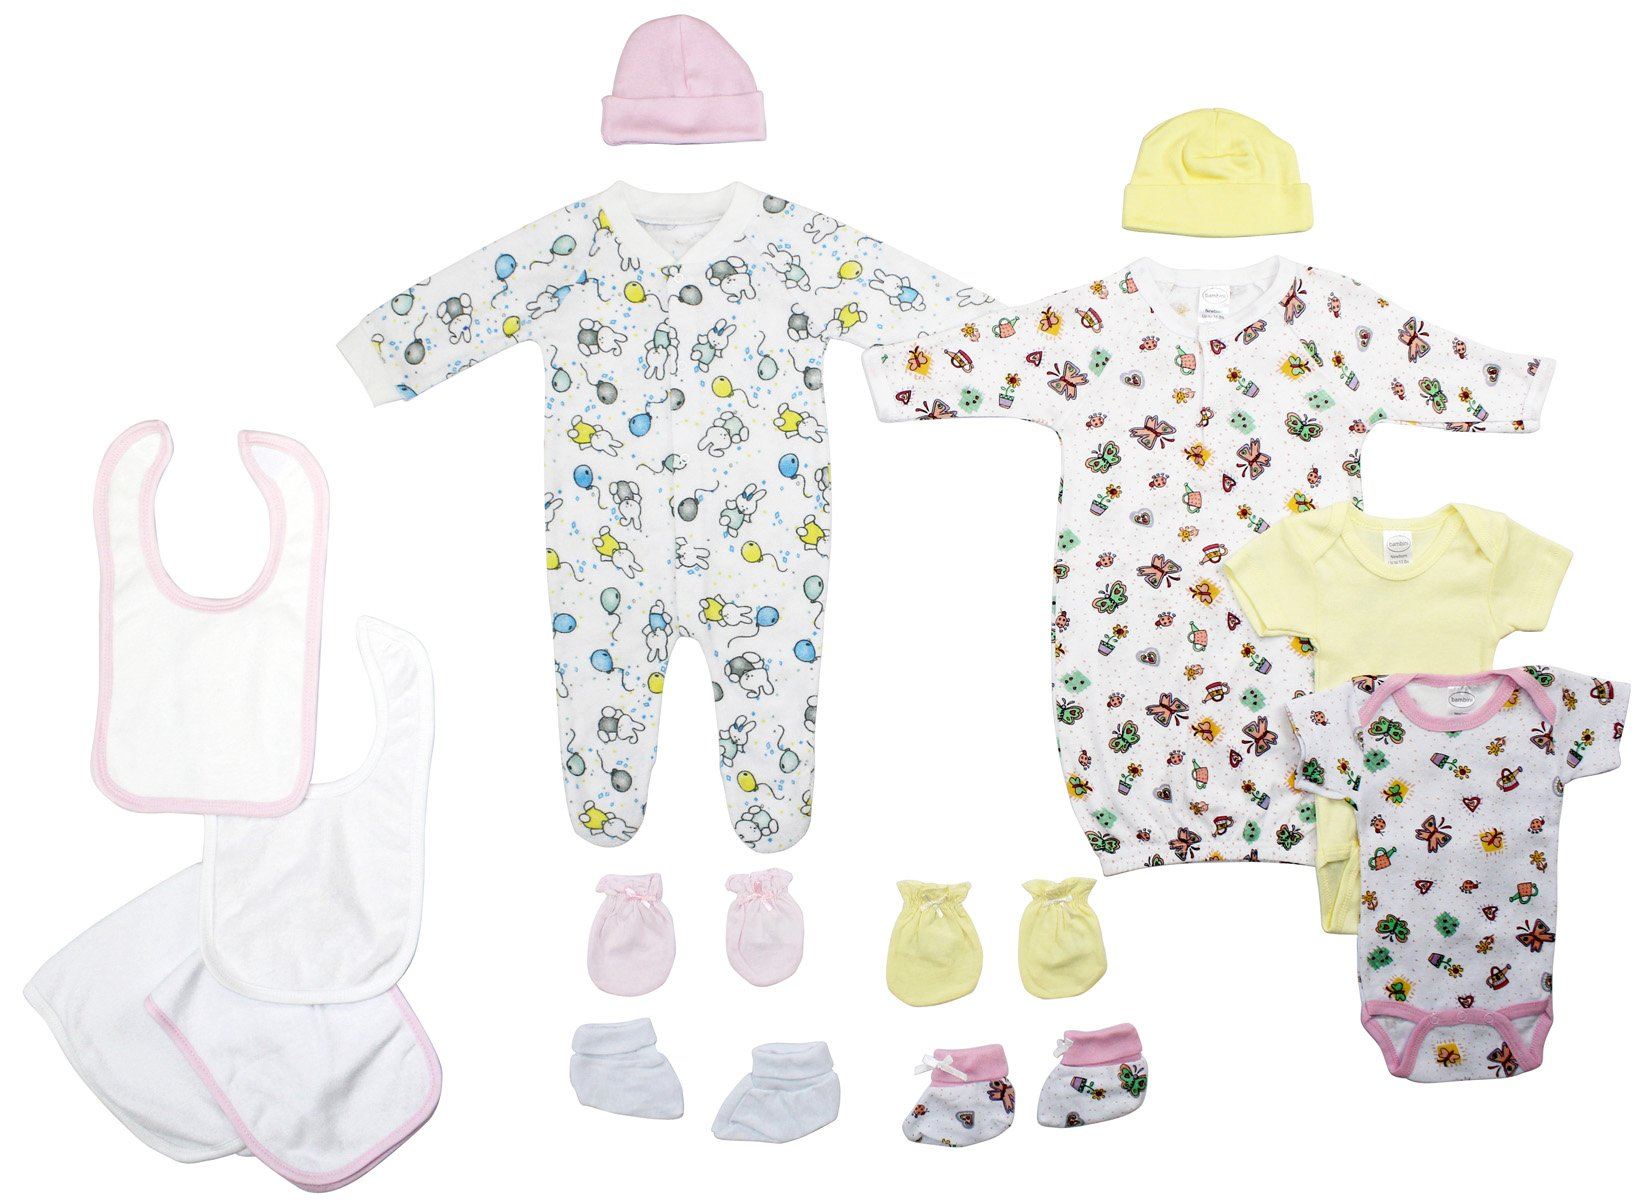 Bambini Newborn Baby Girls 11 Pc Layette Baby Shower Gift Set - Baby World Inc